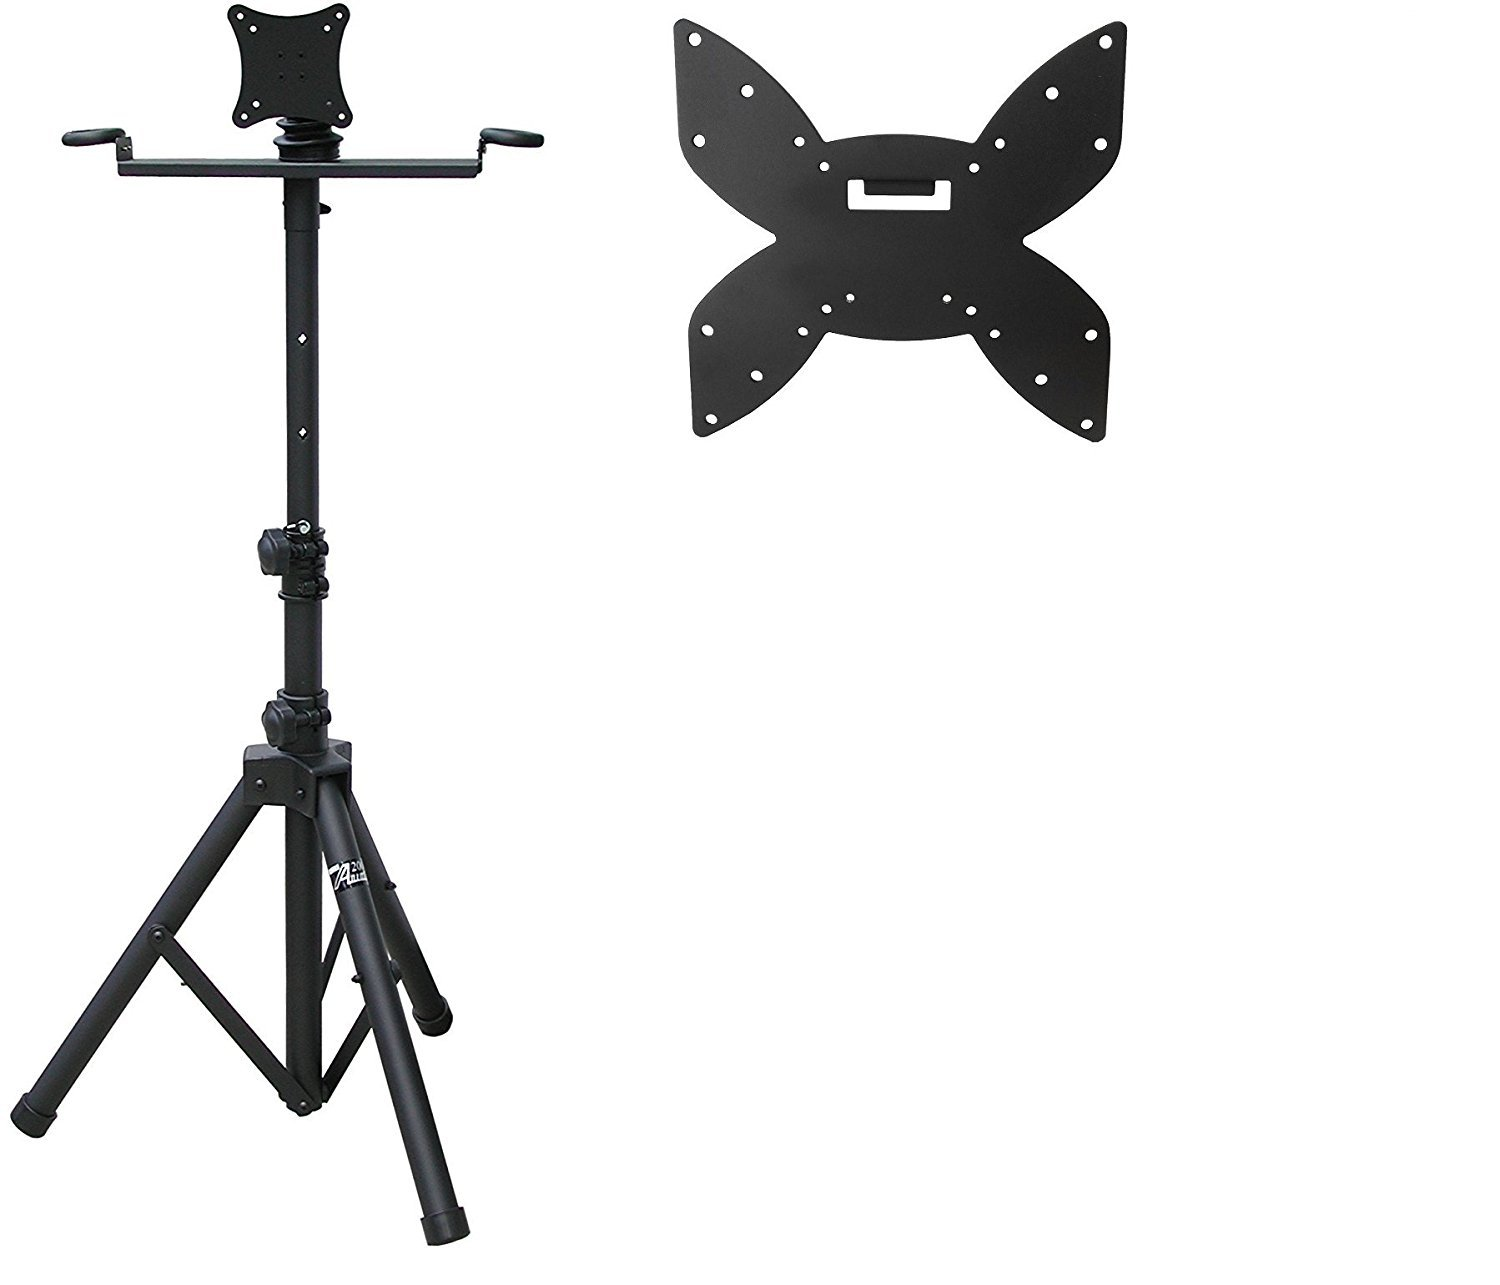 Audio2000'S AST422X Portable Flat Screen Panel LCD LED TV Monitor Stand with 5 Wheels, Including Two Mounting Plates (Compatible with Vesa 400x200, 200x200, 200x100,100x100, 75x75 Hole Patterns) Audio2000'S